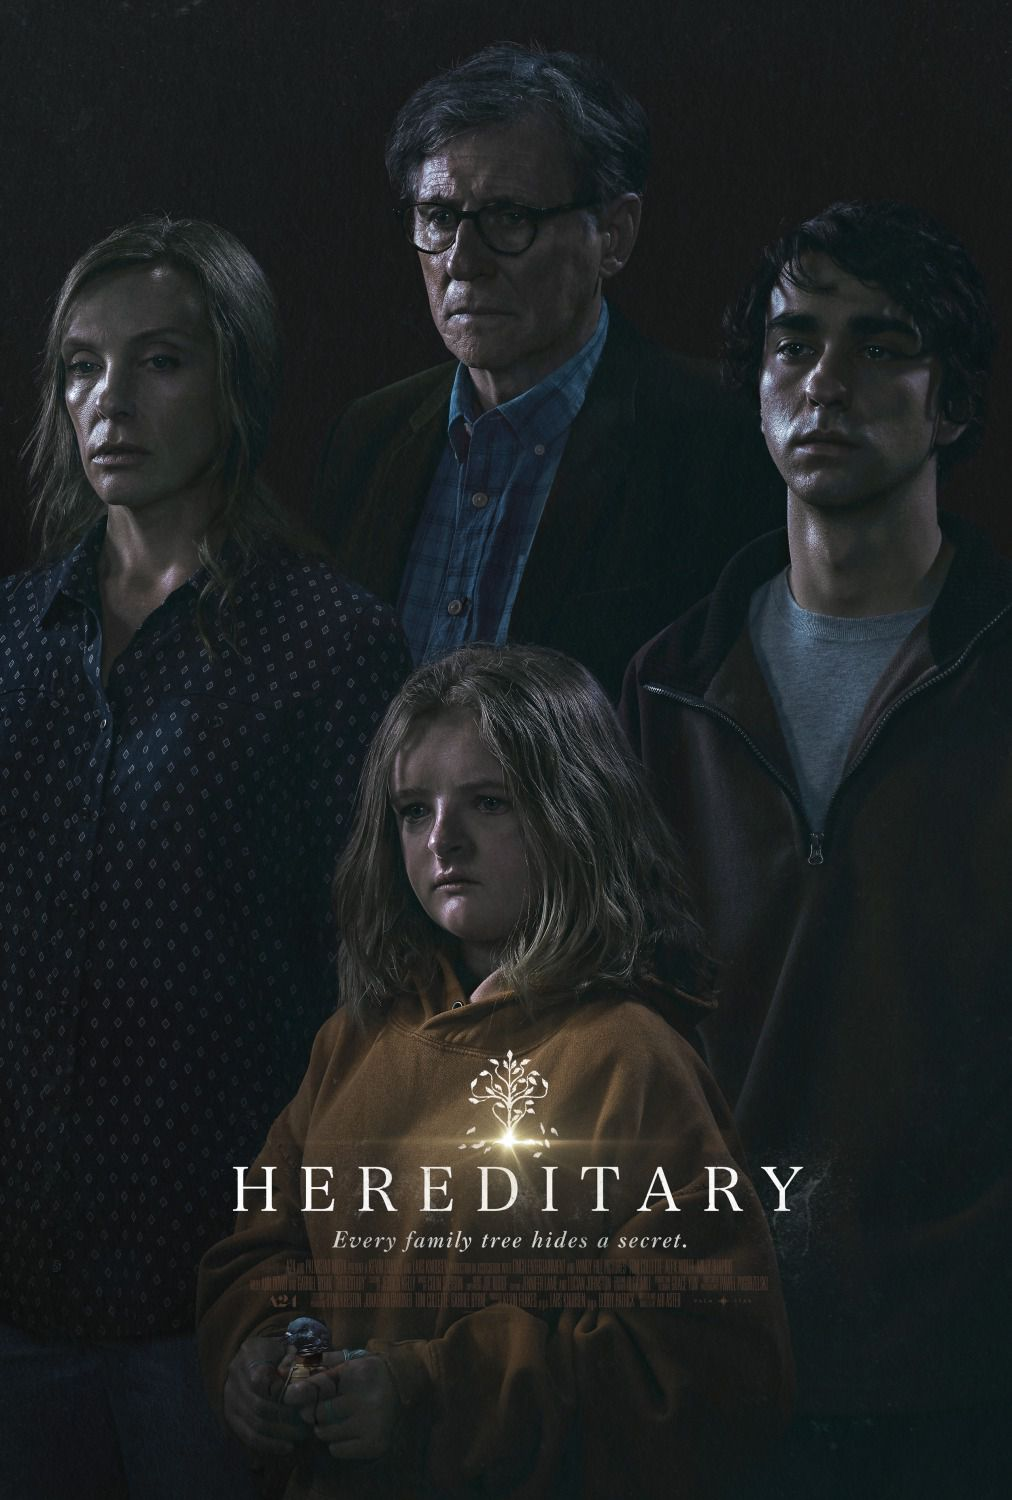 Hereditary - Every family tree hides a secret - poster 2018